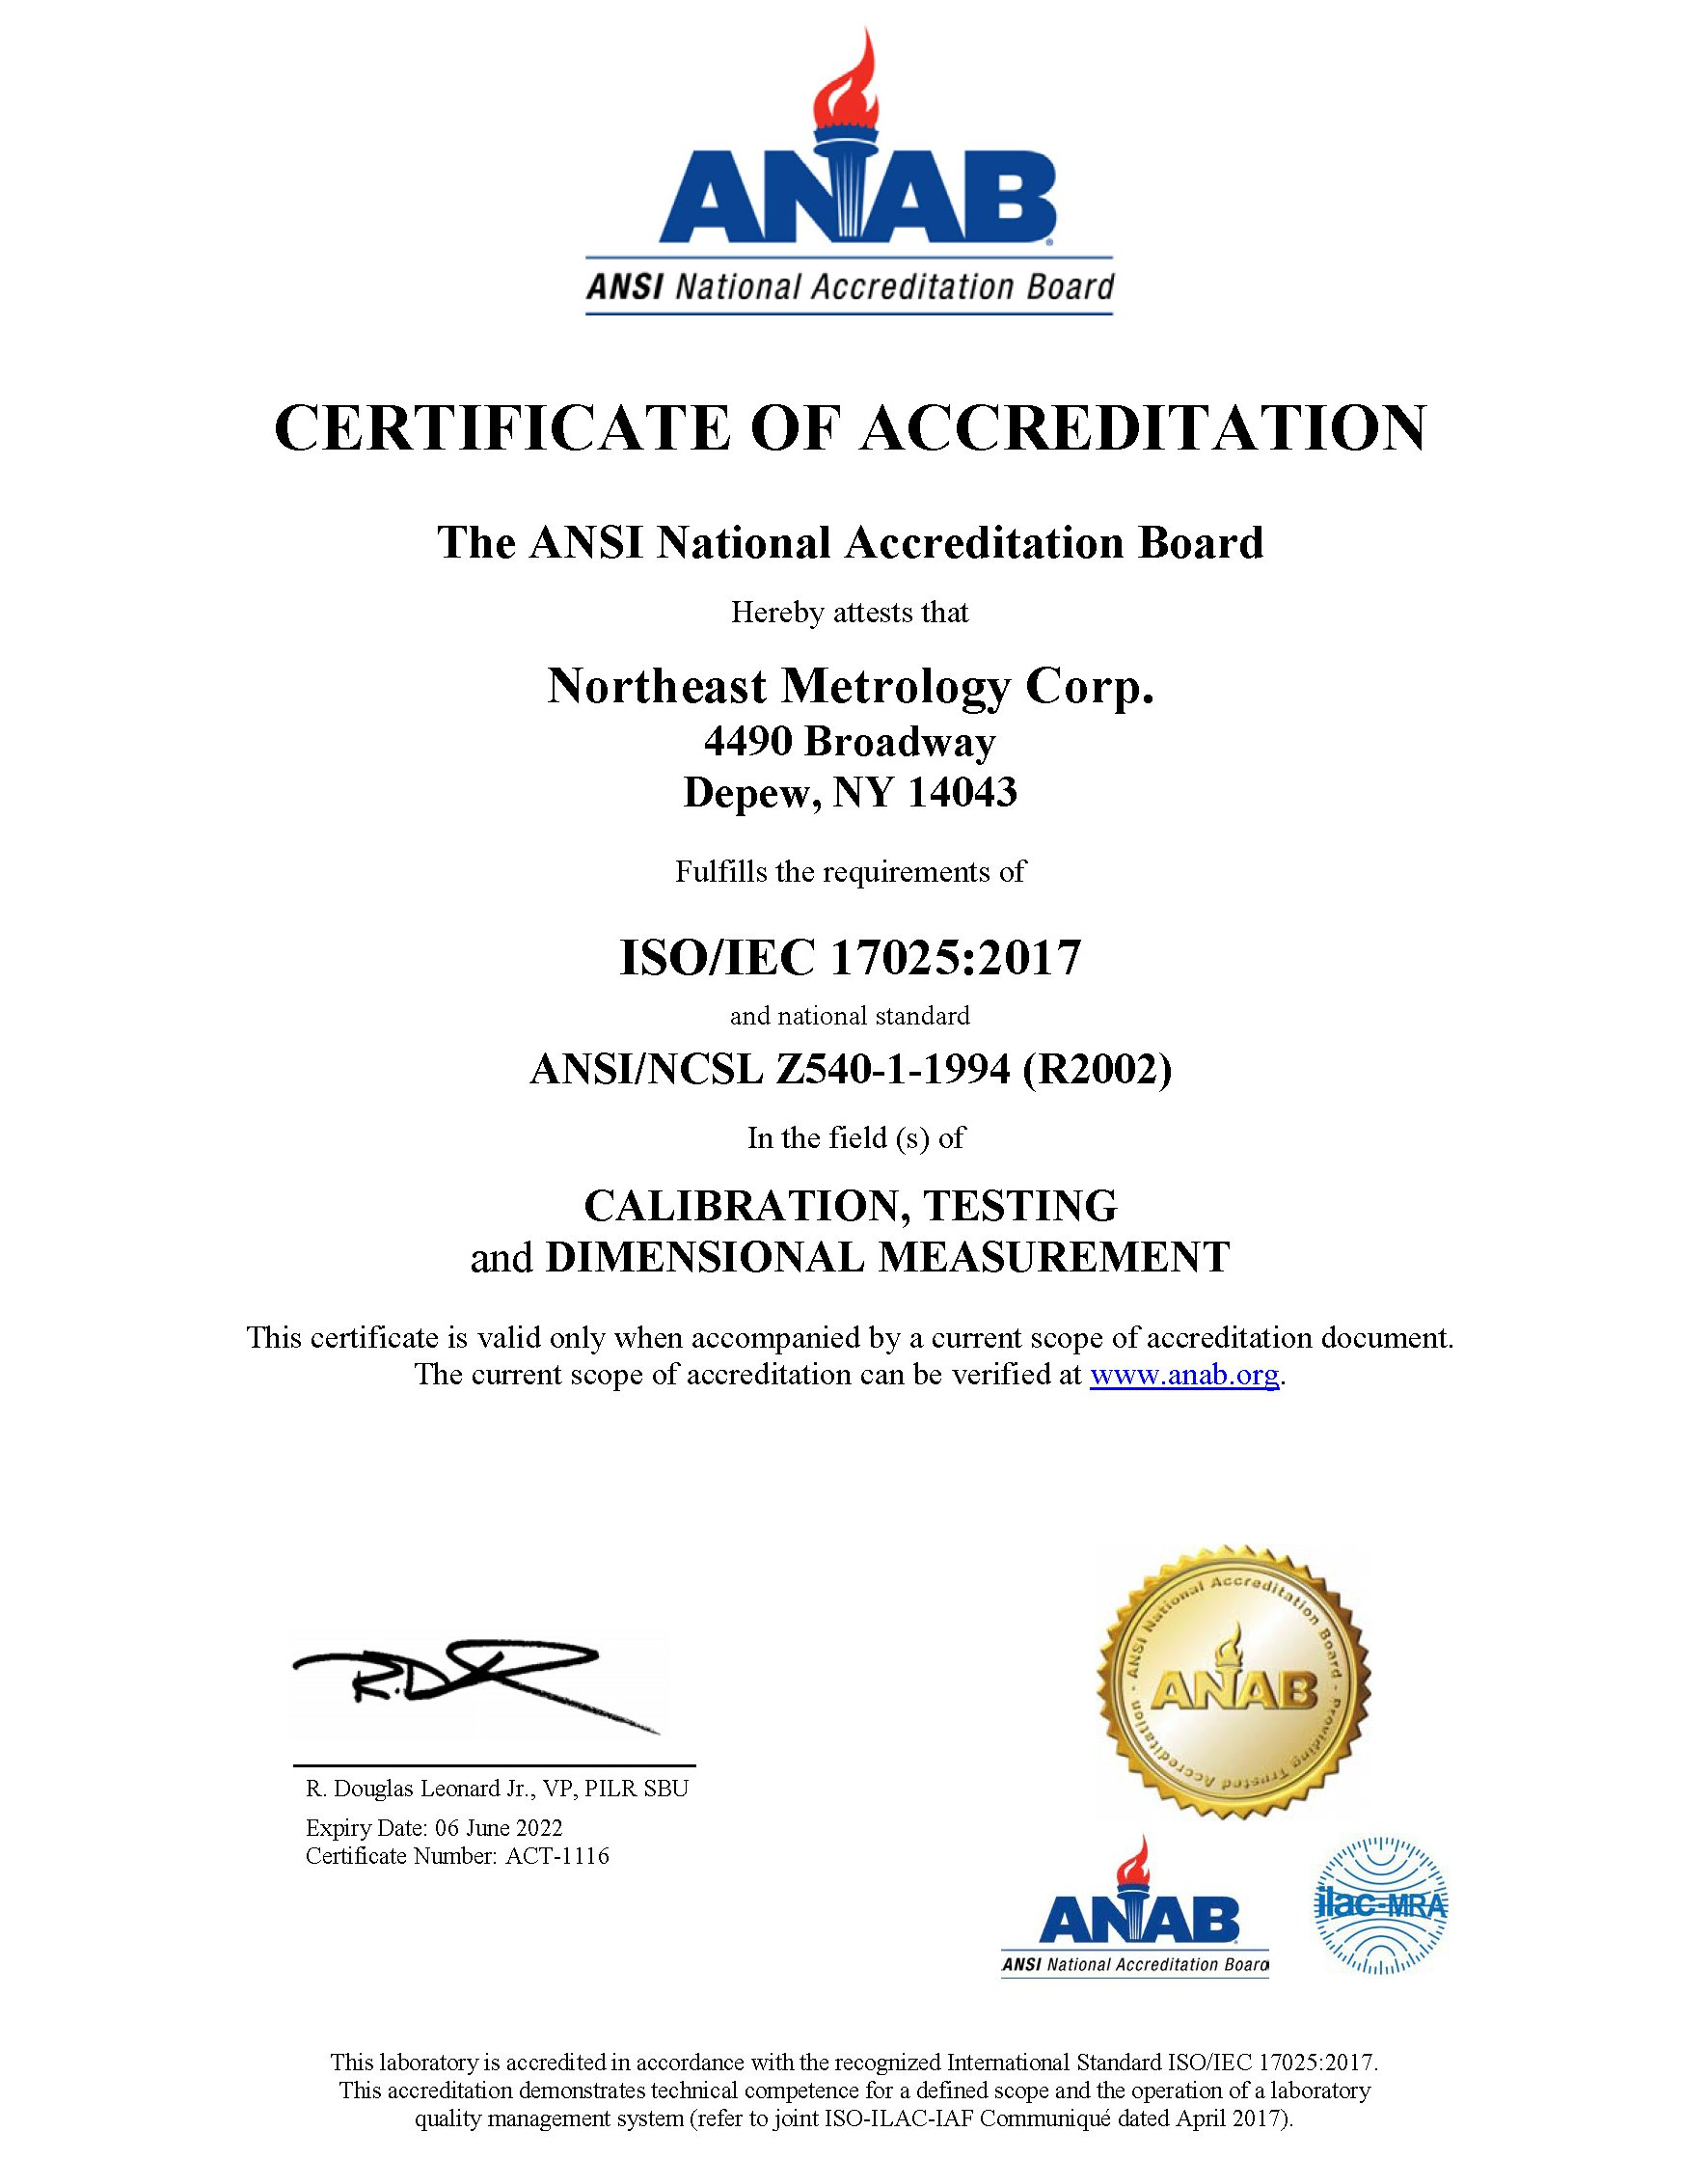 Image of Certificate of Accreditation